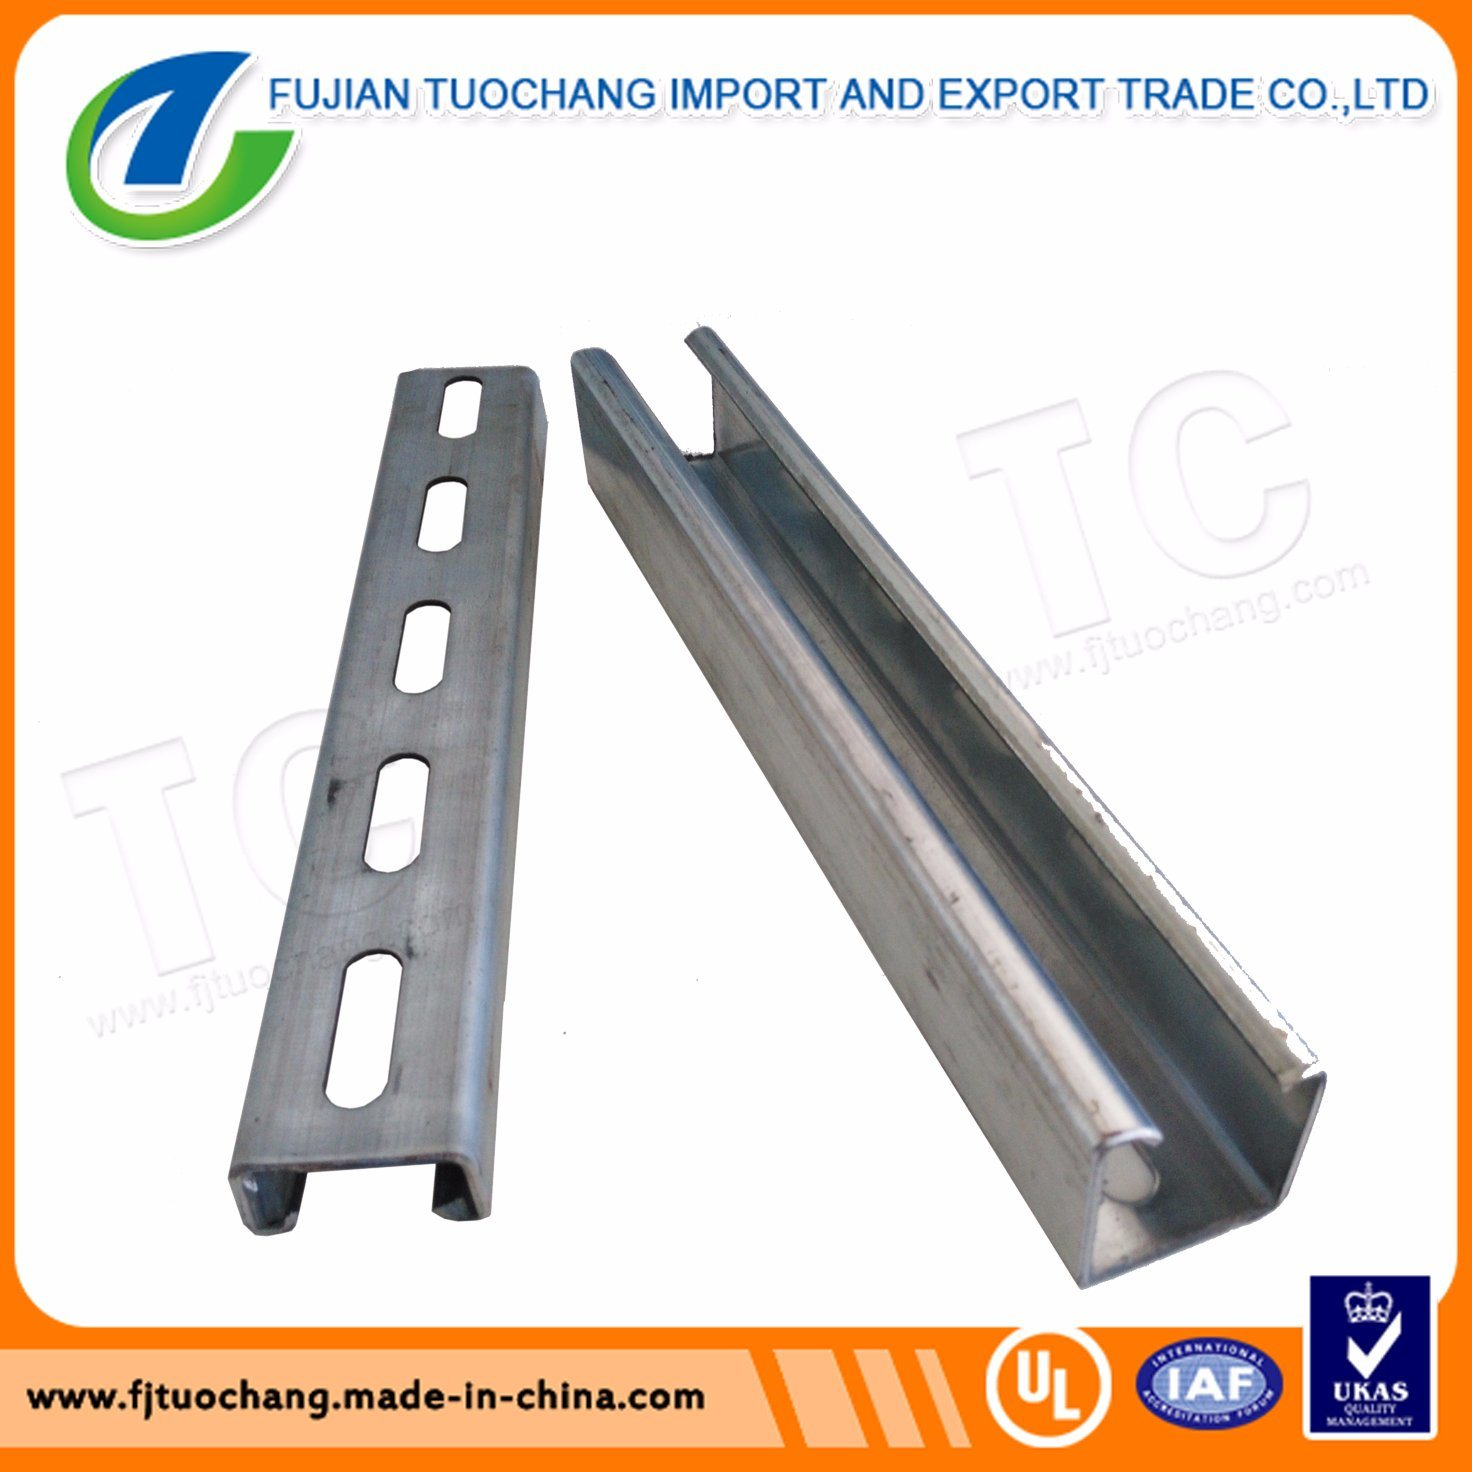 Hot Dipped Galvanized Slotted Channel Steel Strut Channel